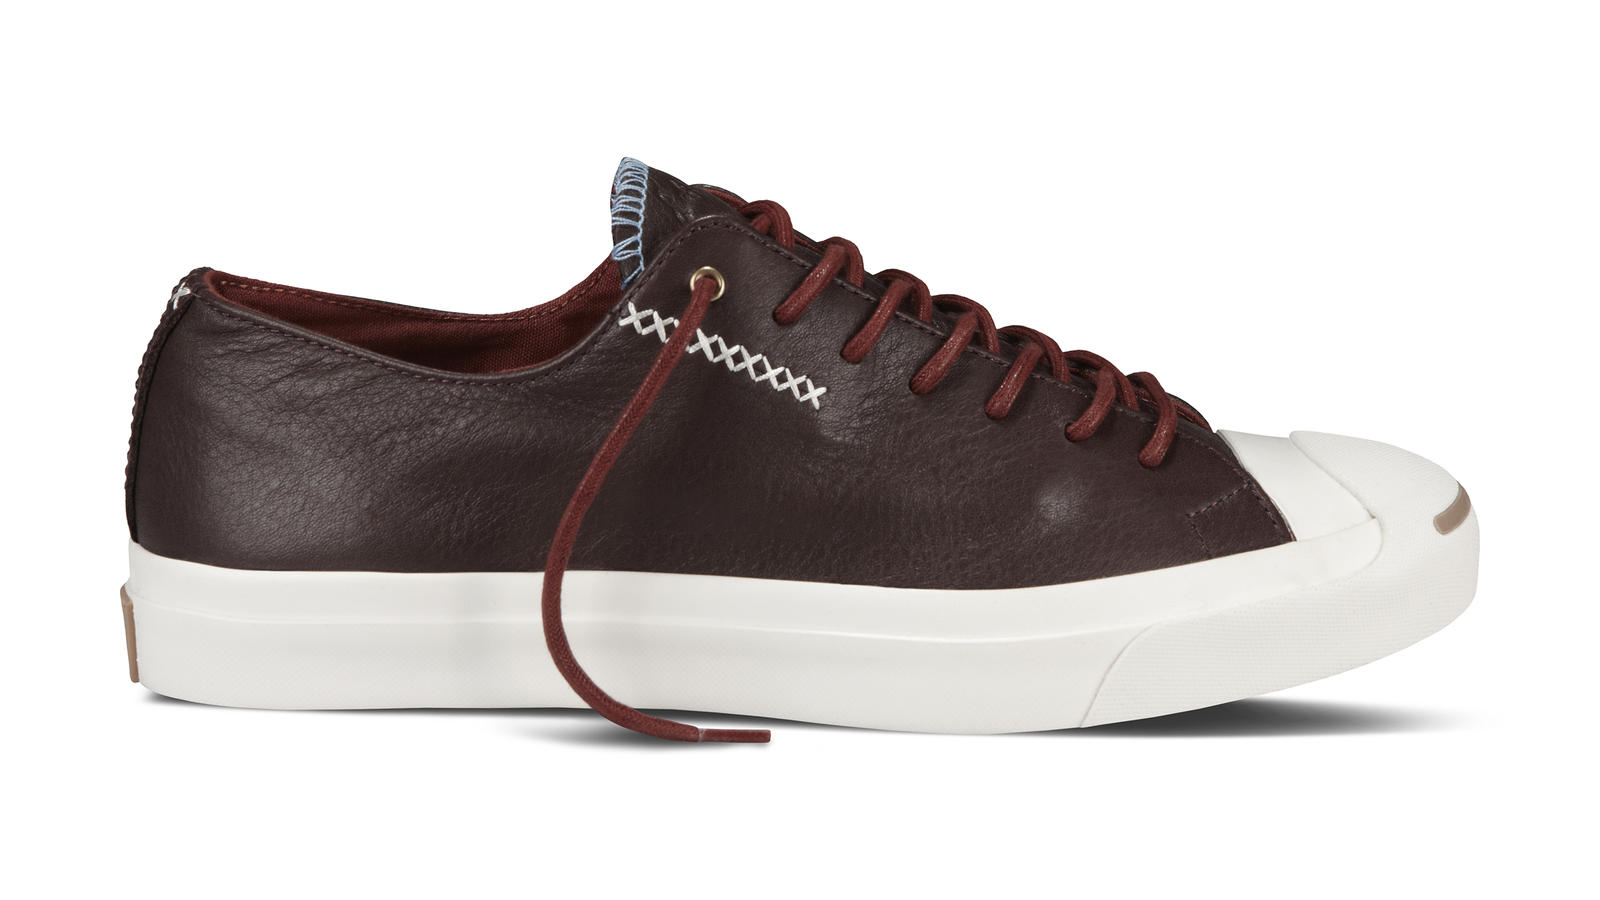 Jack Purcell Jack Bordo Original